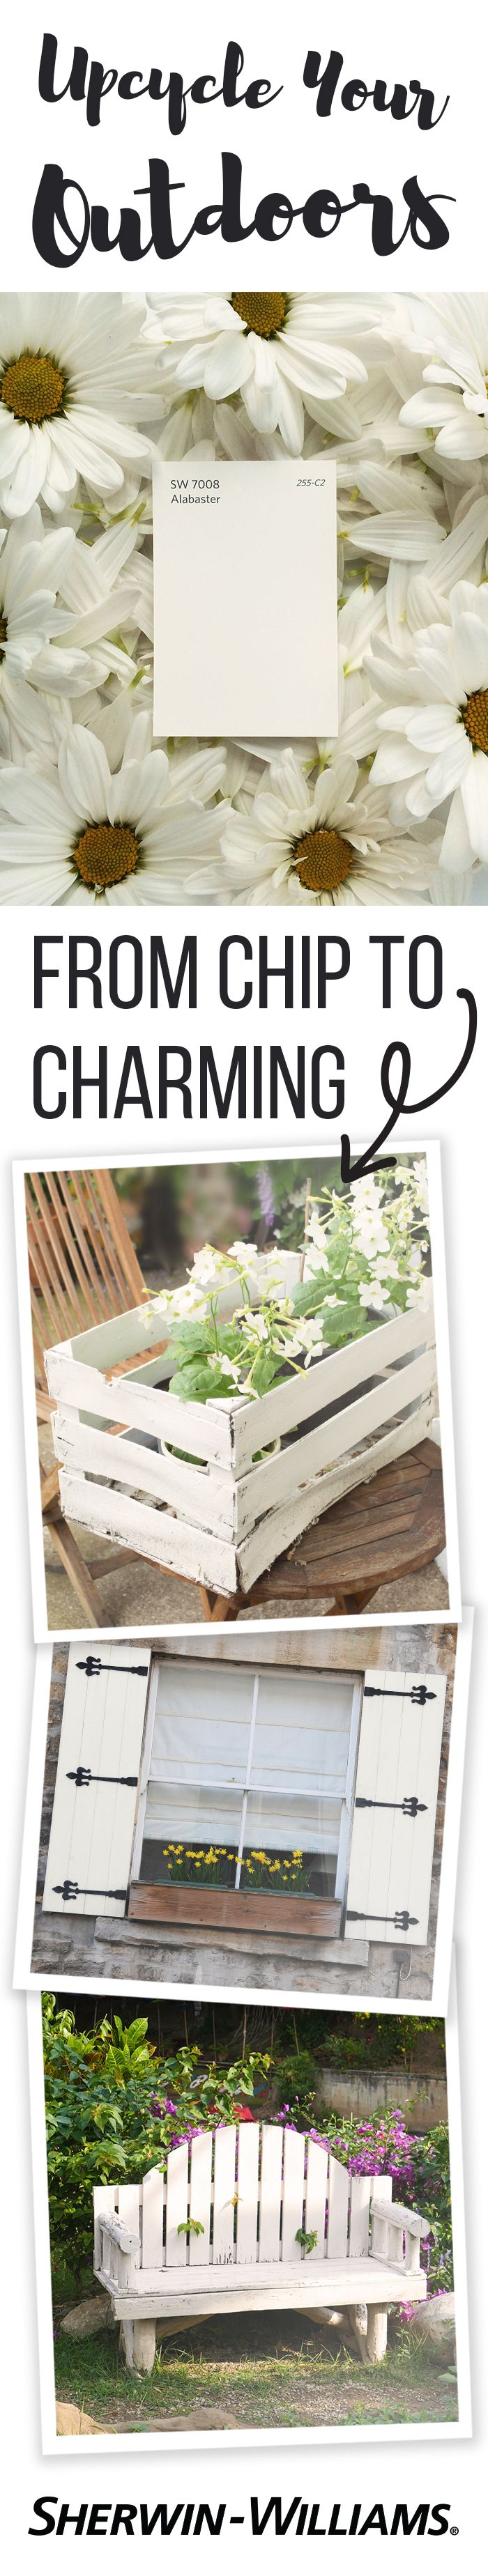 White apron green thumb - Summer S Here Which Means Color S In Bloom Time To Get Outside And Put That